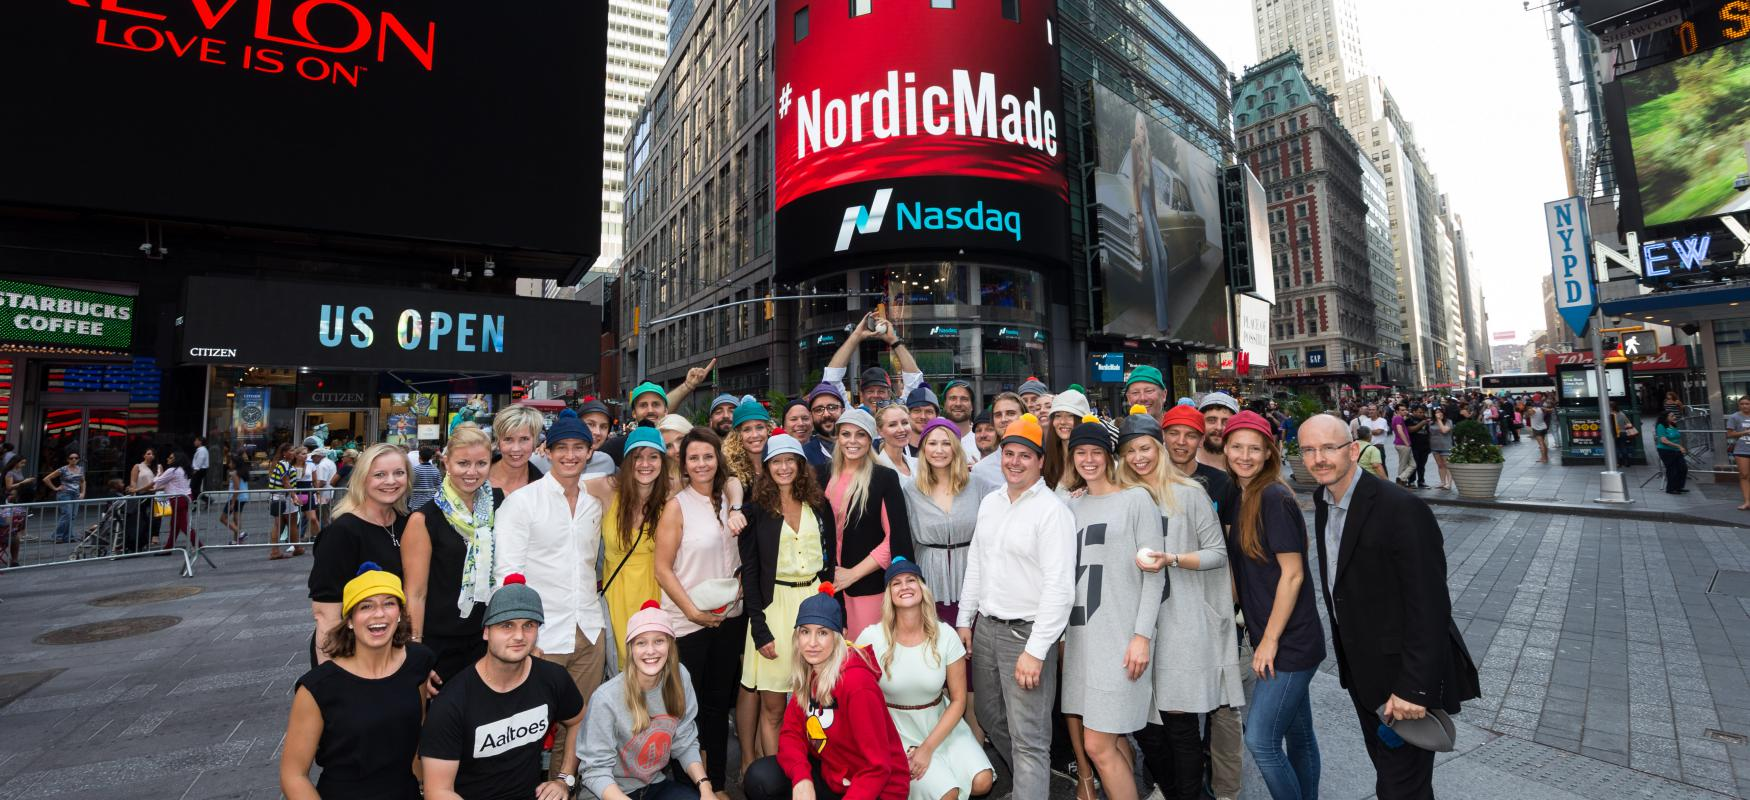 The Nordic Made team is gathered at Times Square in New York